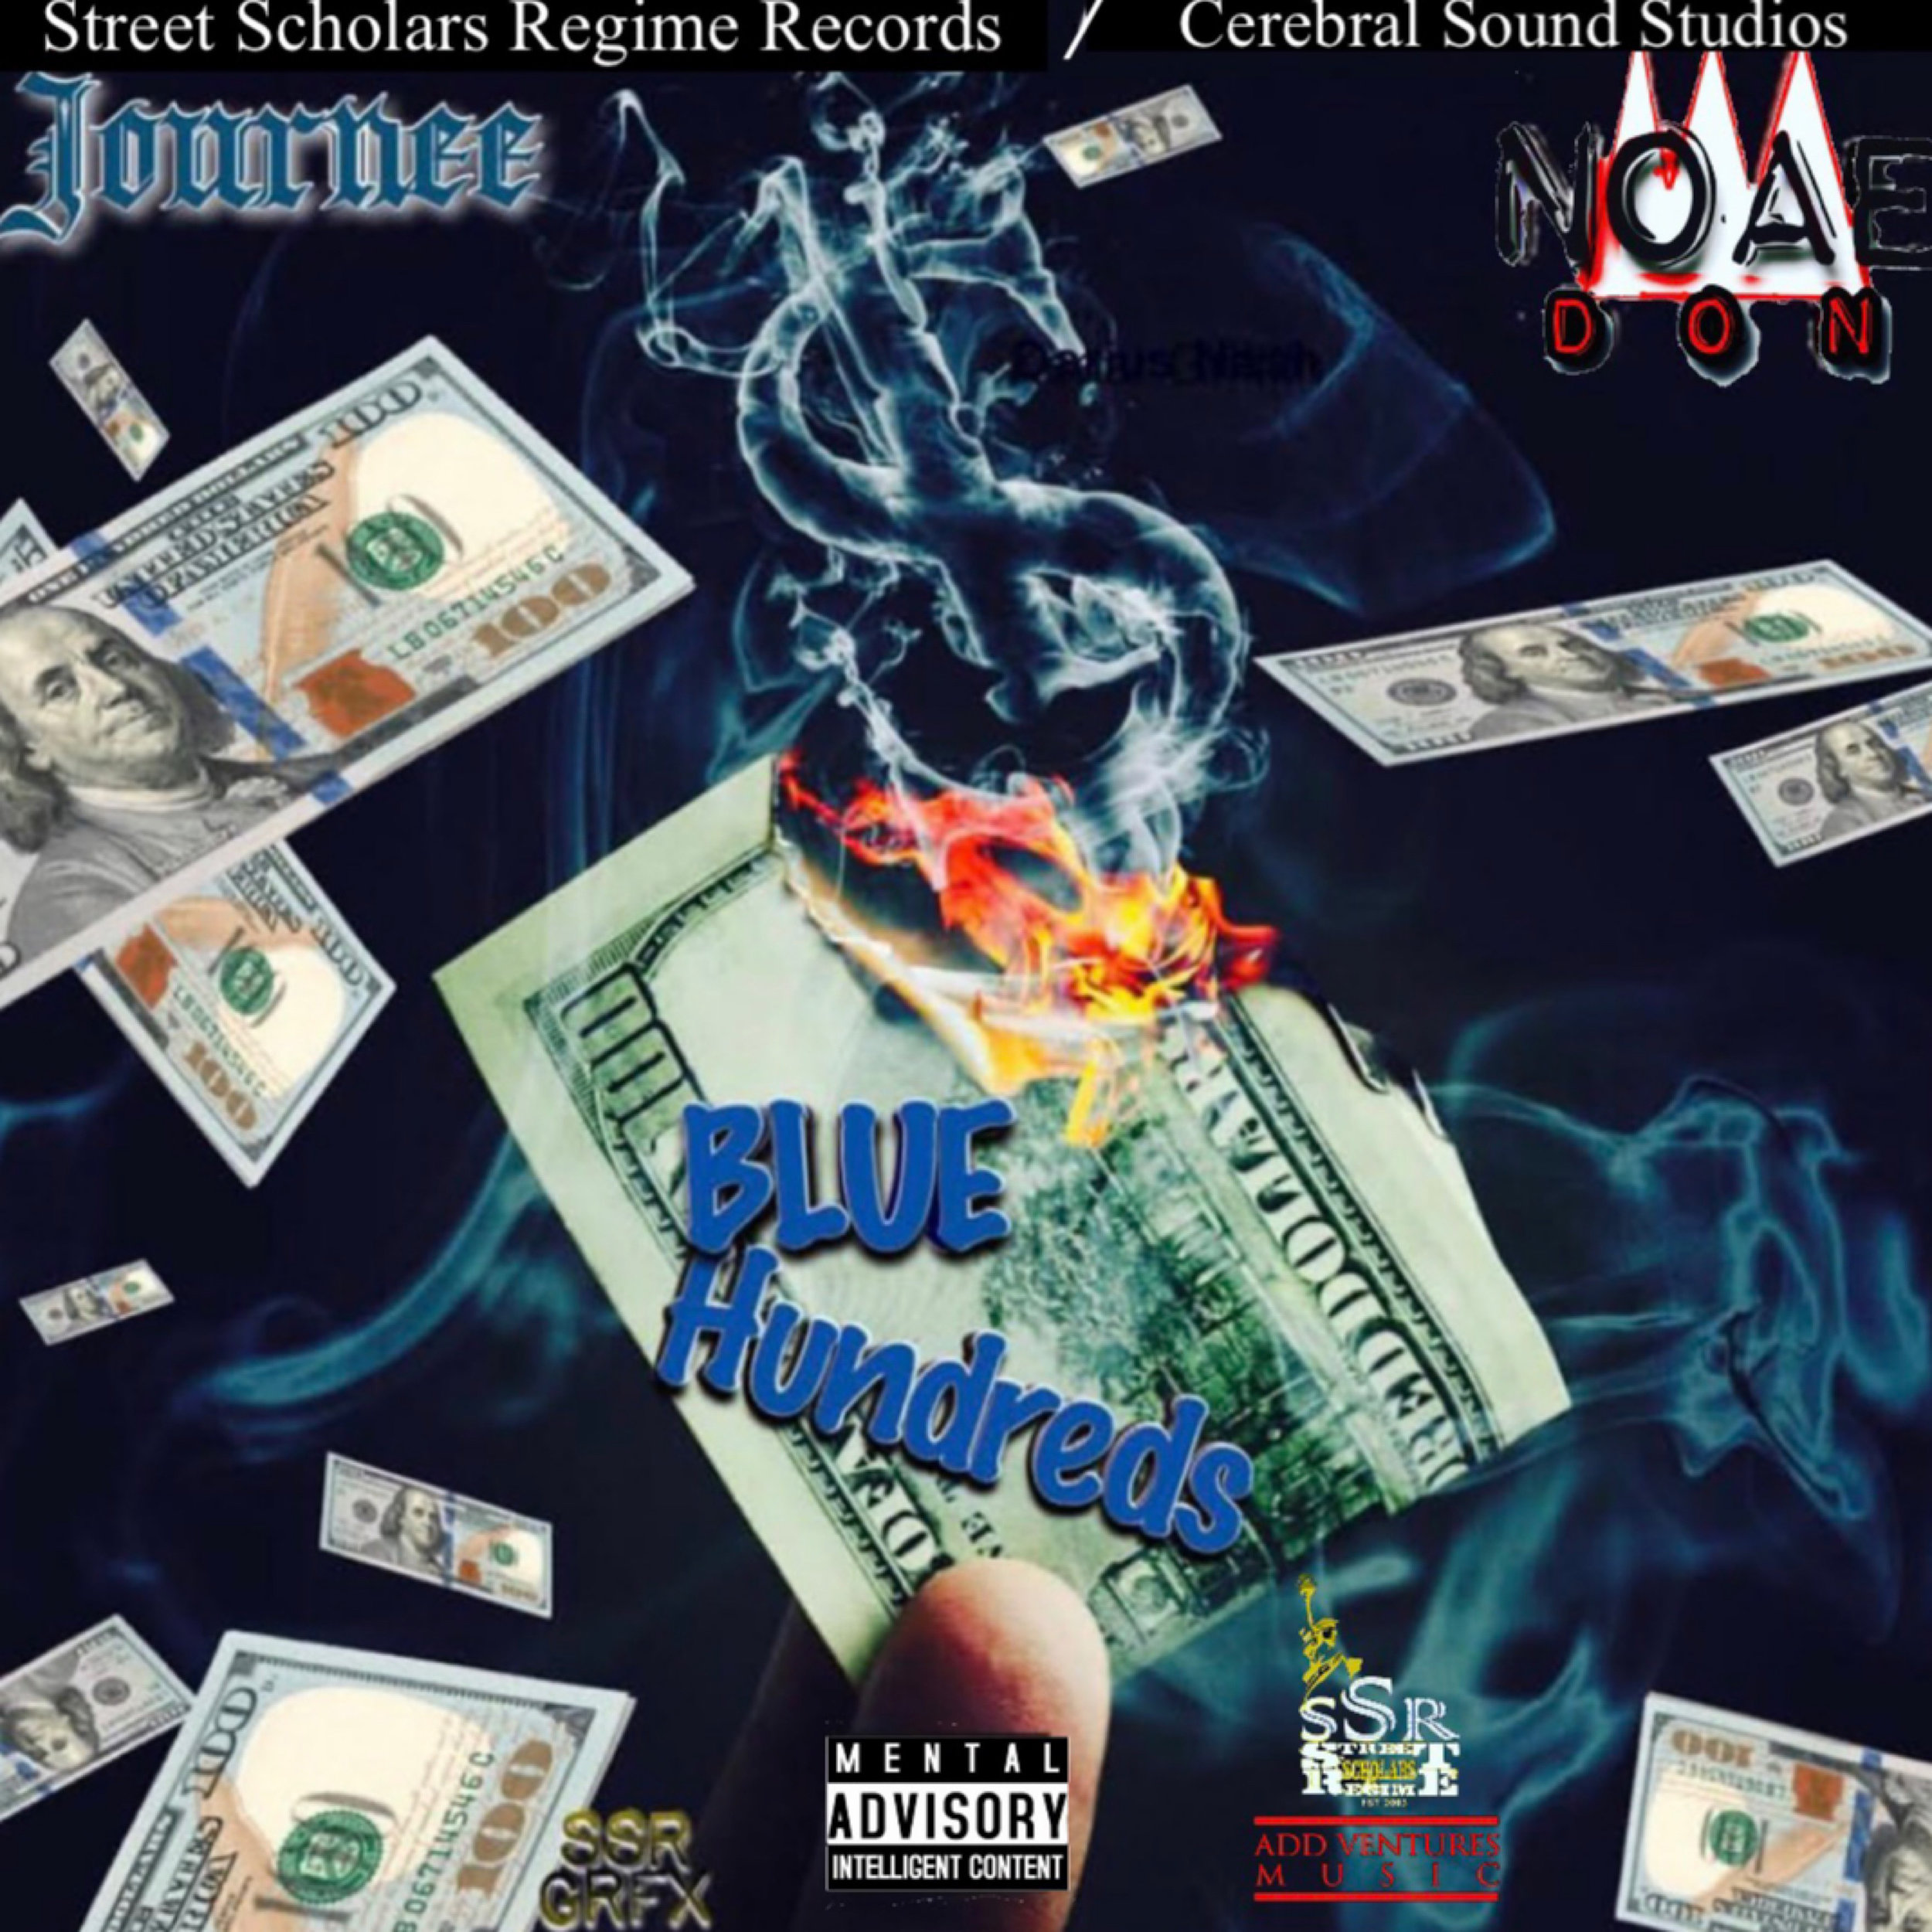 Noae Don - Blue Hundreds - Explicit Single.jpeg